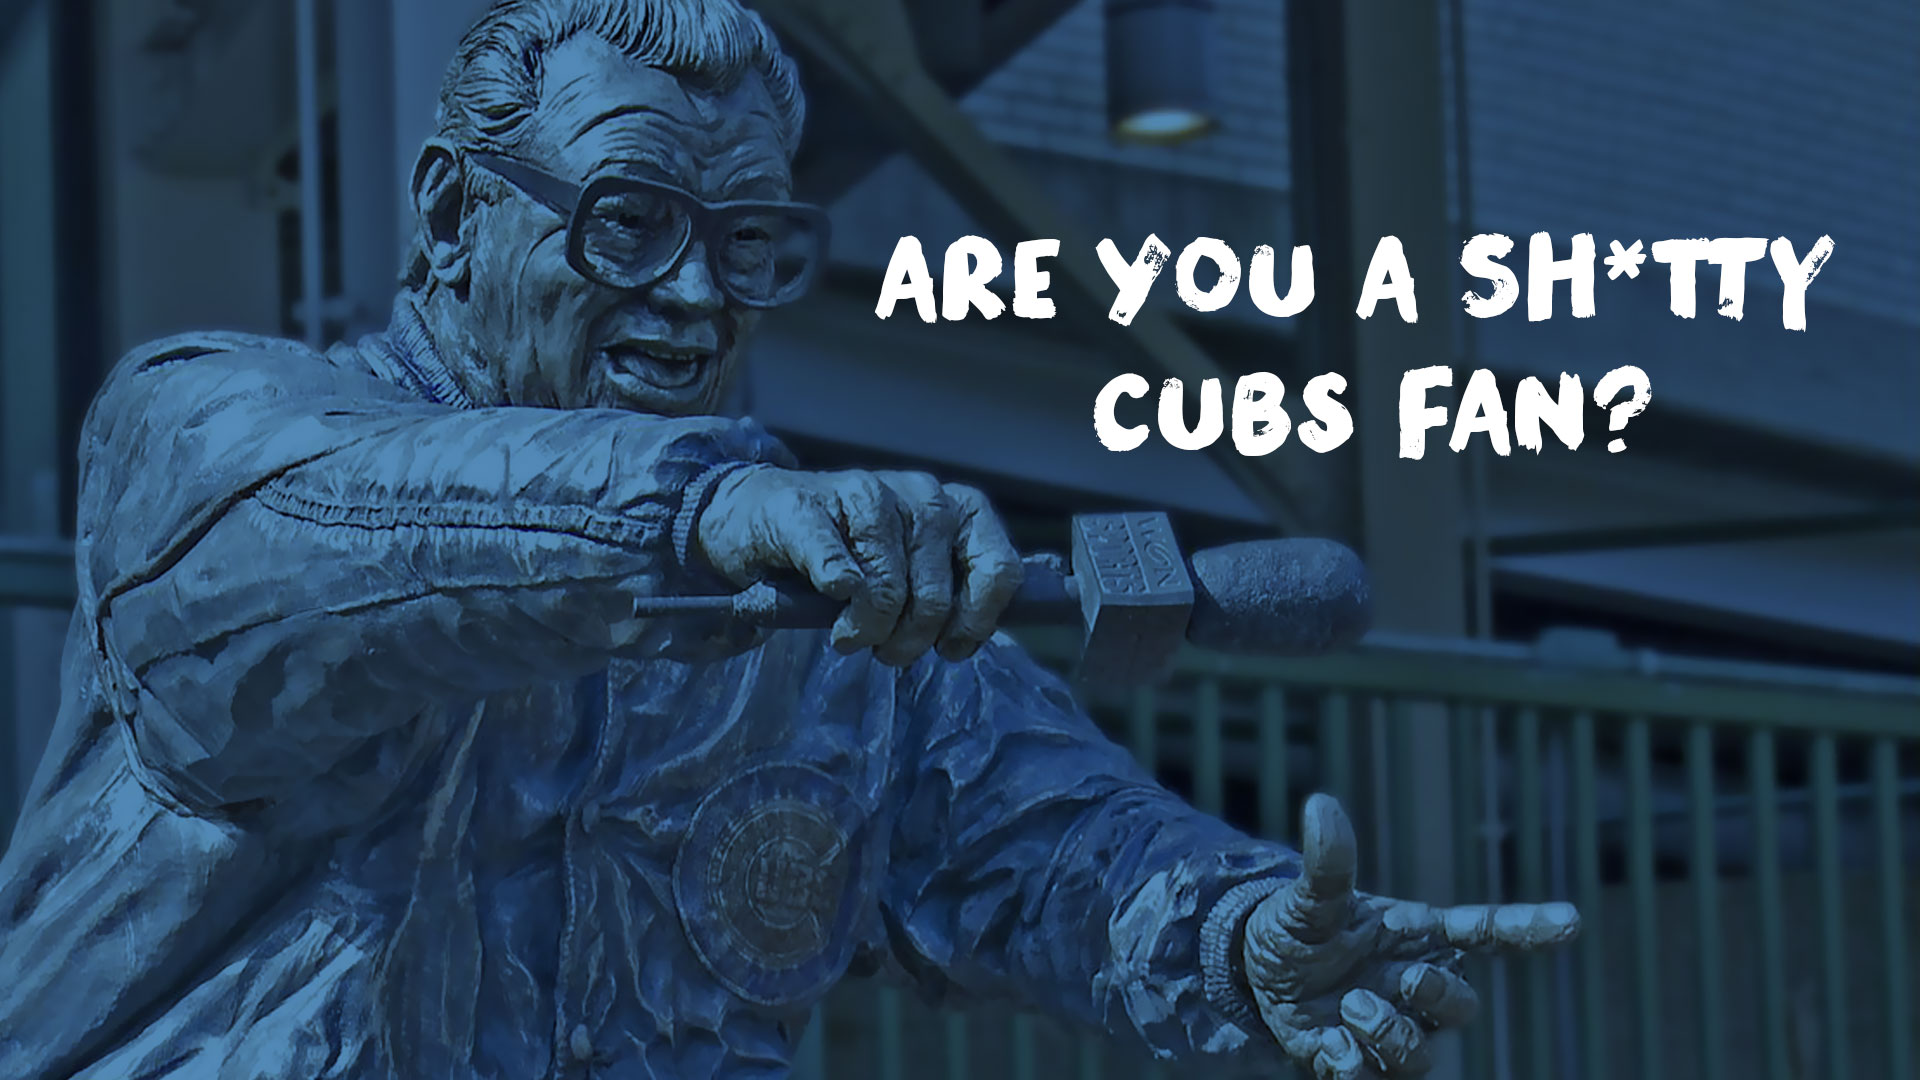 Are You a Sh*tty Cubs Fan?